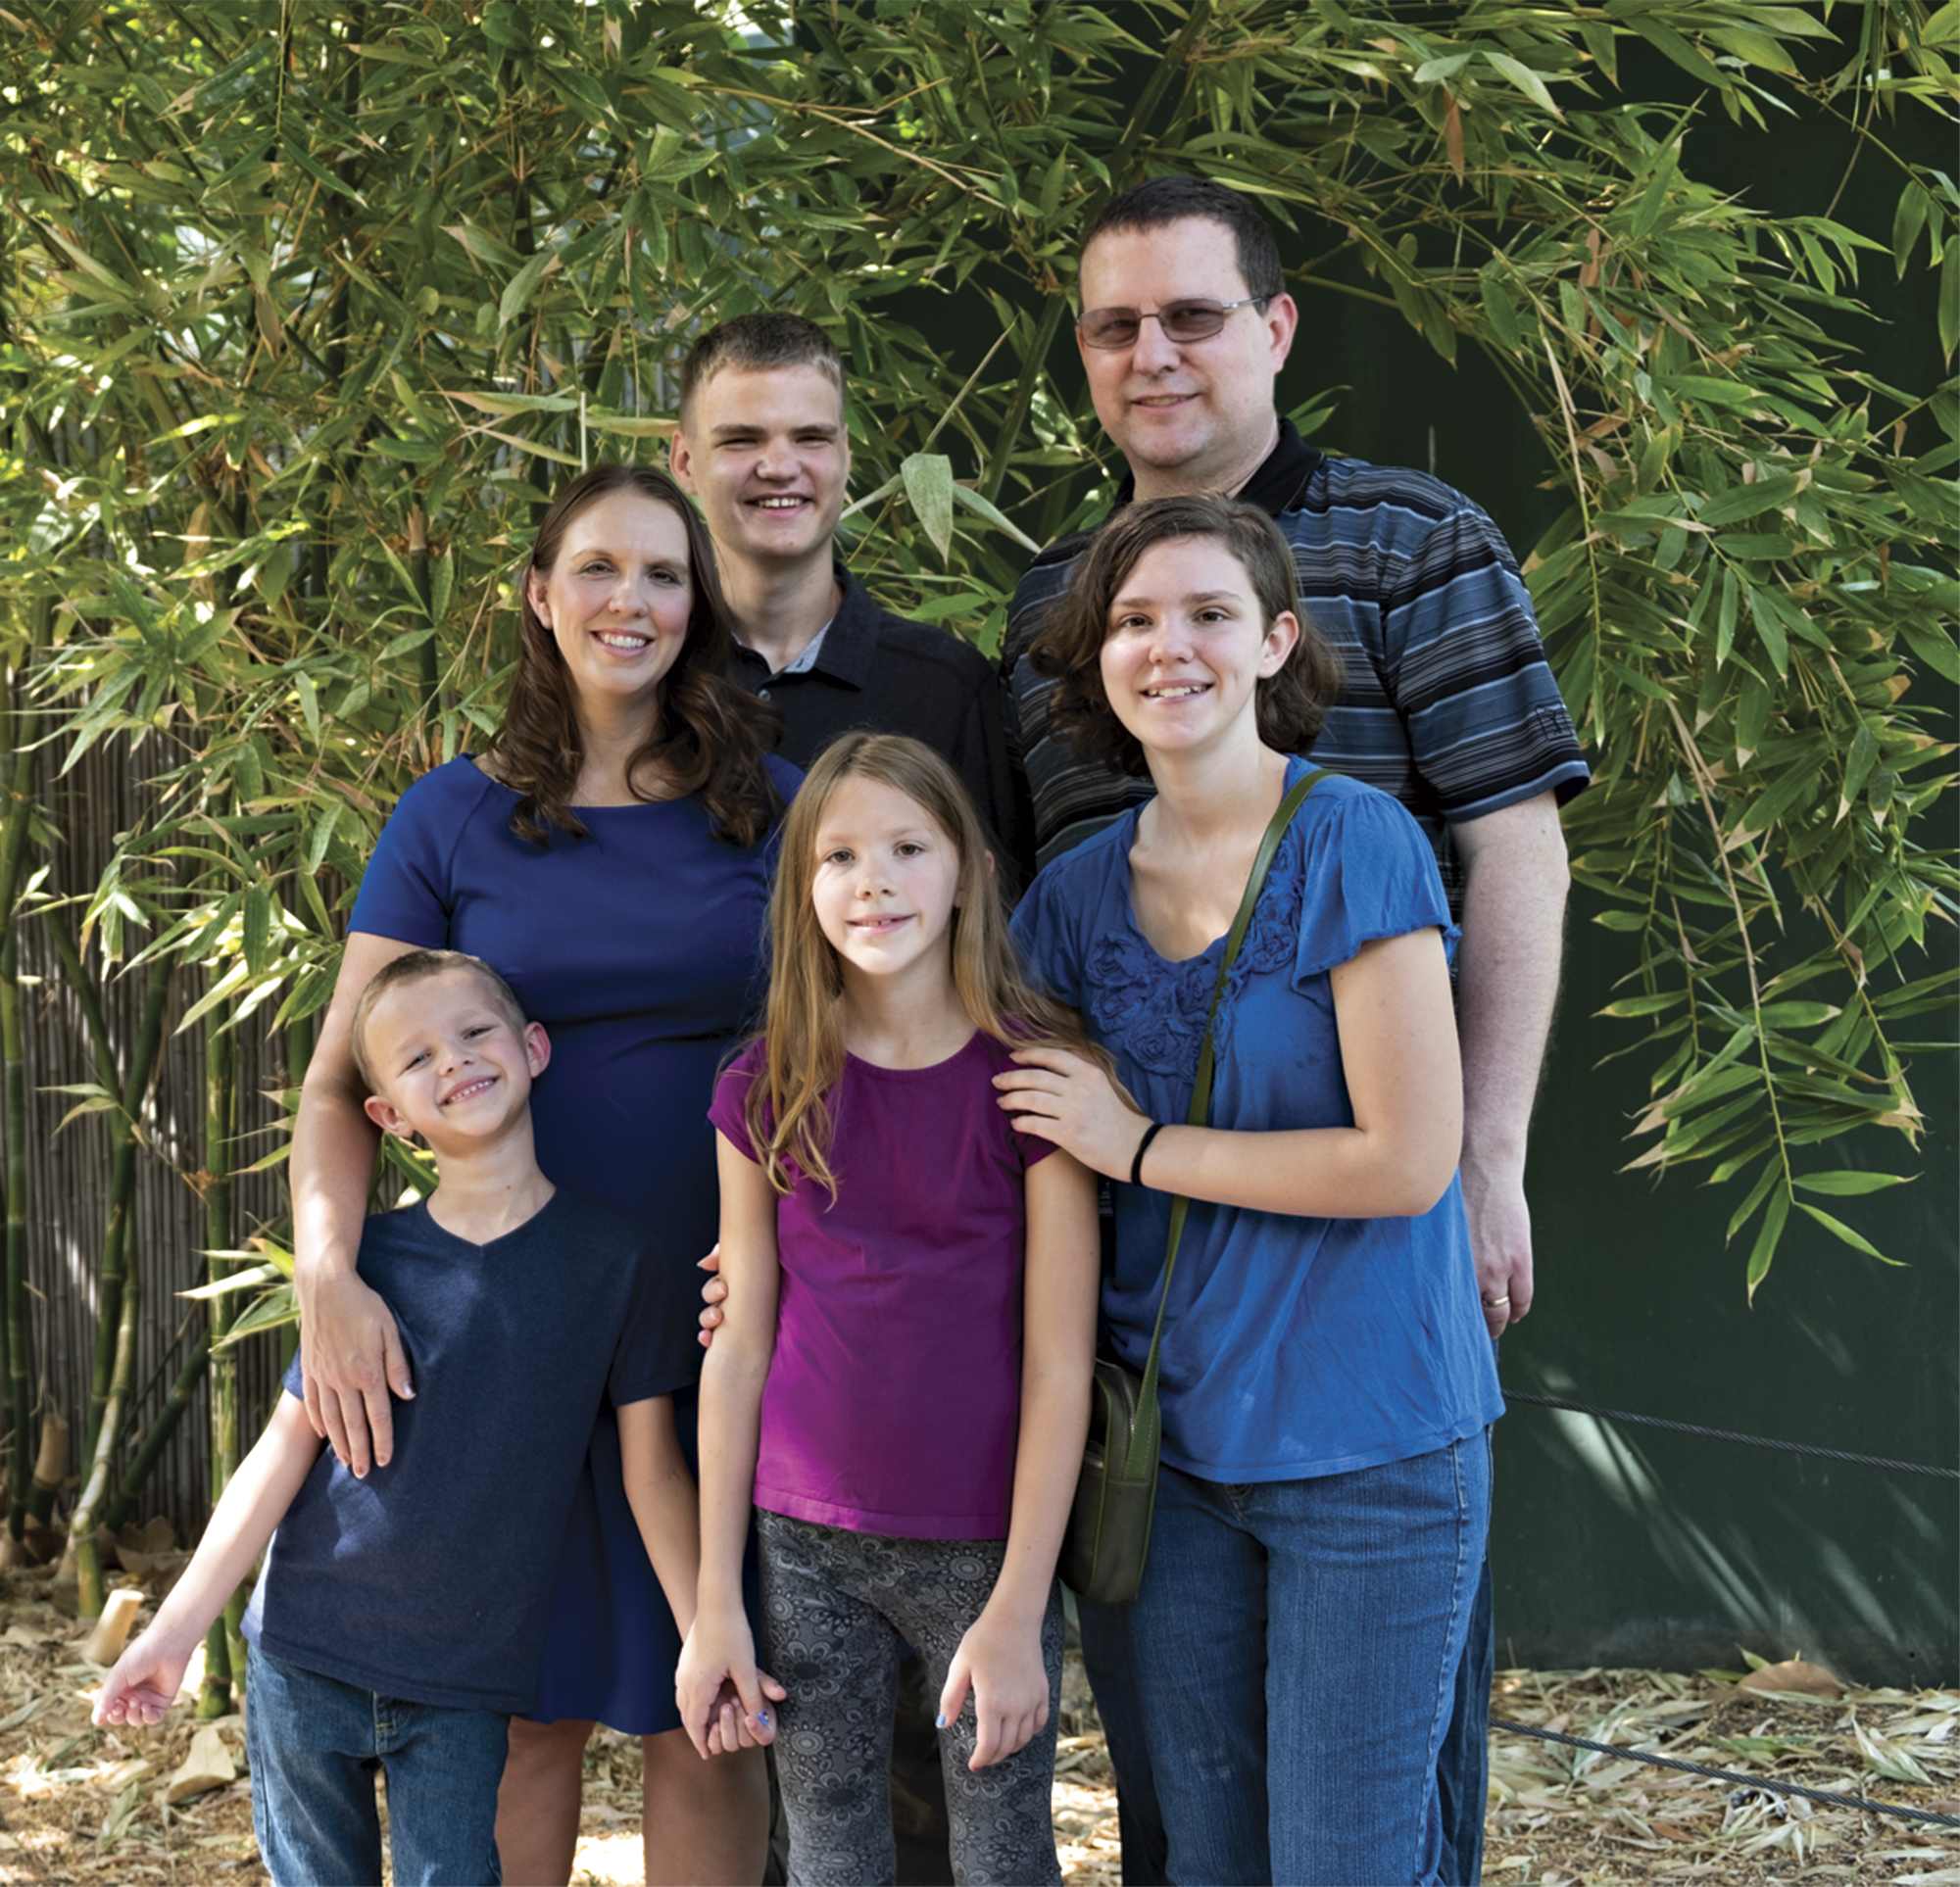 Michelle and Jesse Udall with, from left to right, children JD, Brian, Adelyn and Louisa.; Photo by Mirelle Inglefield